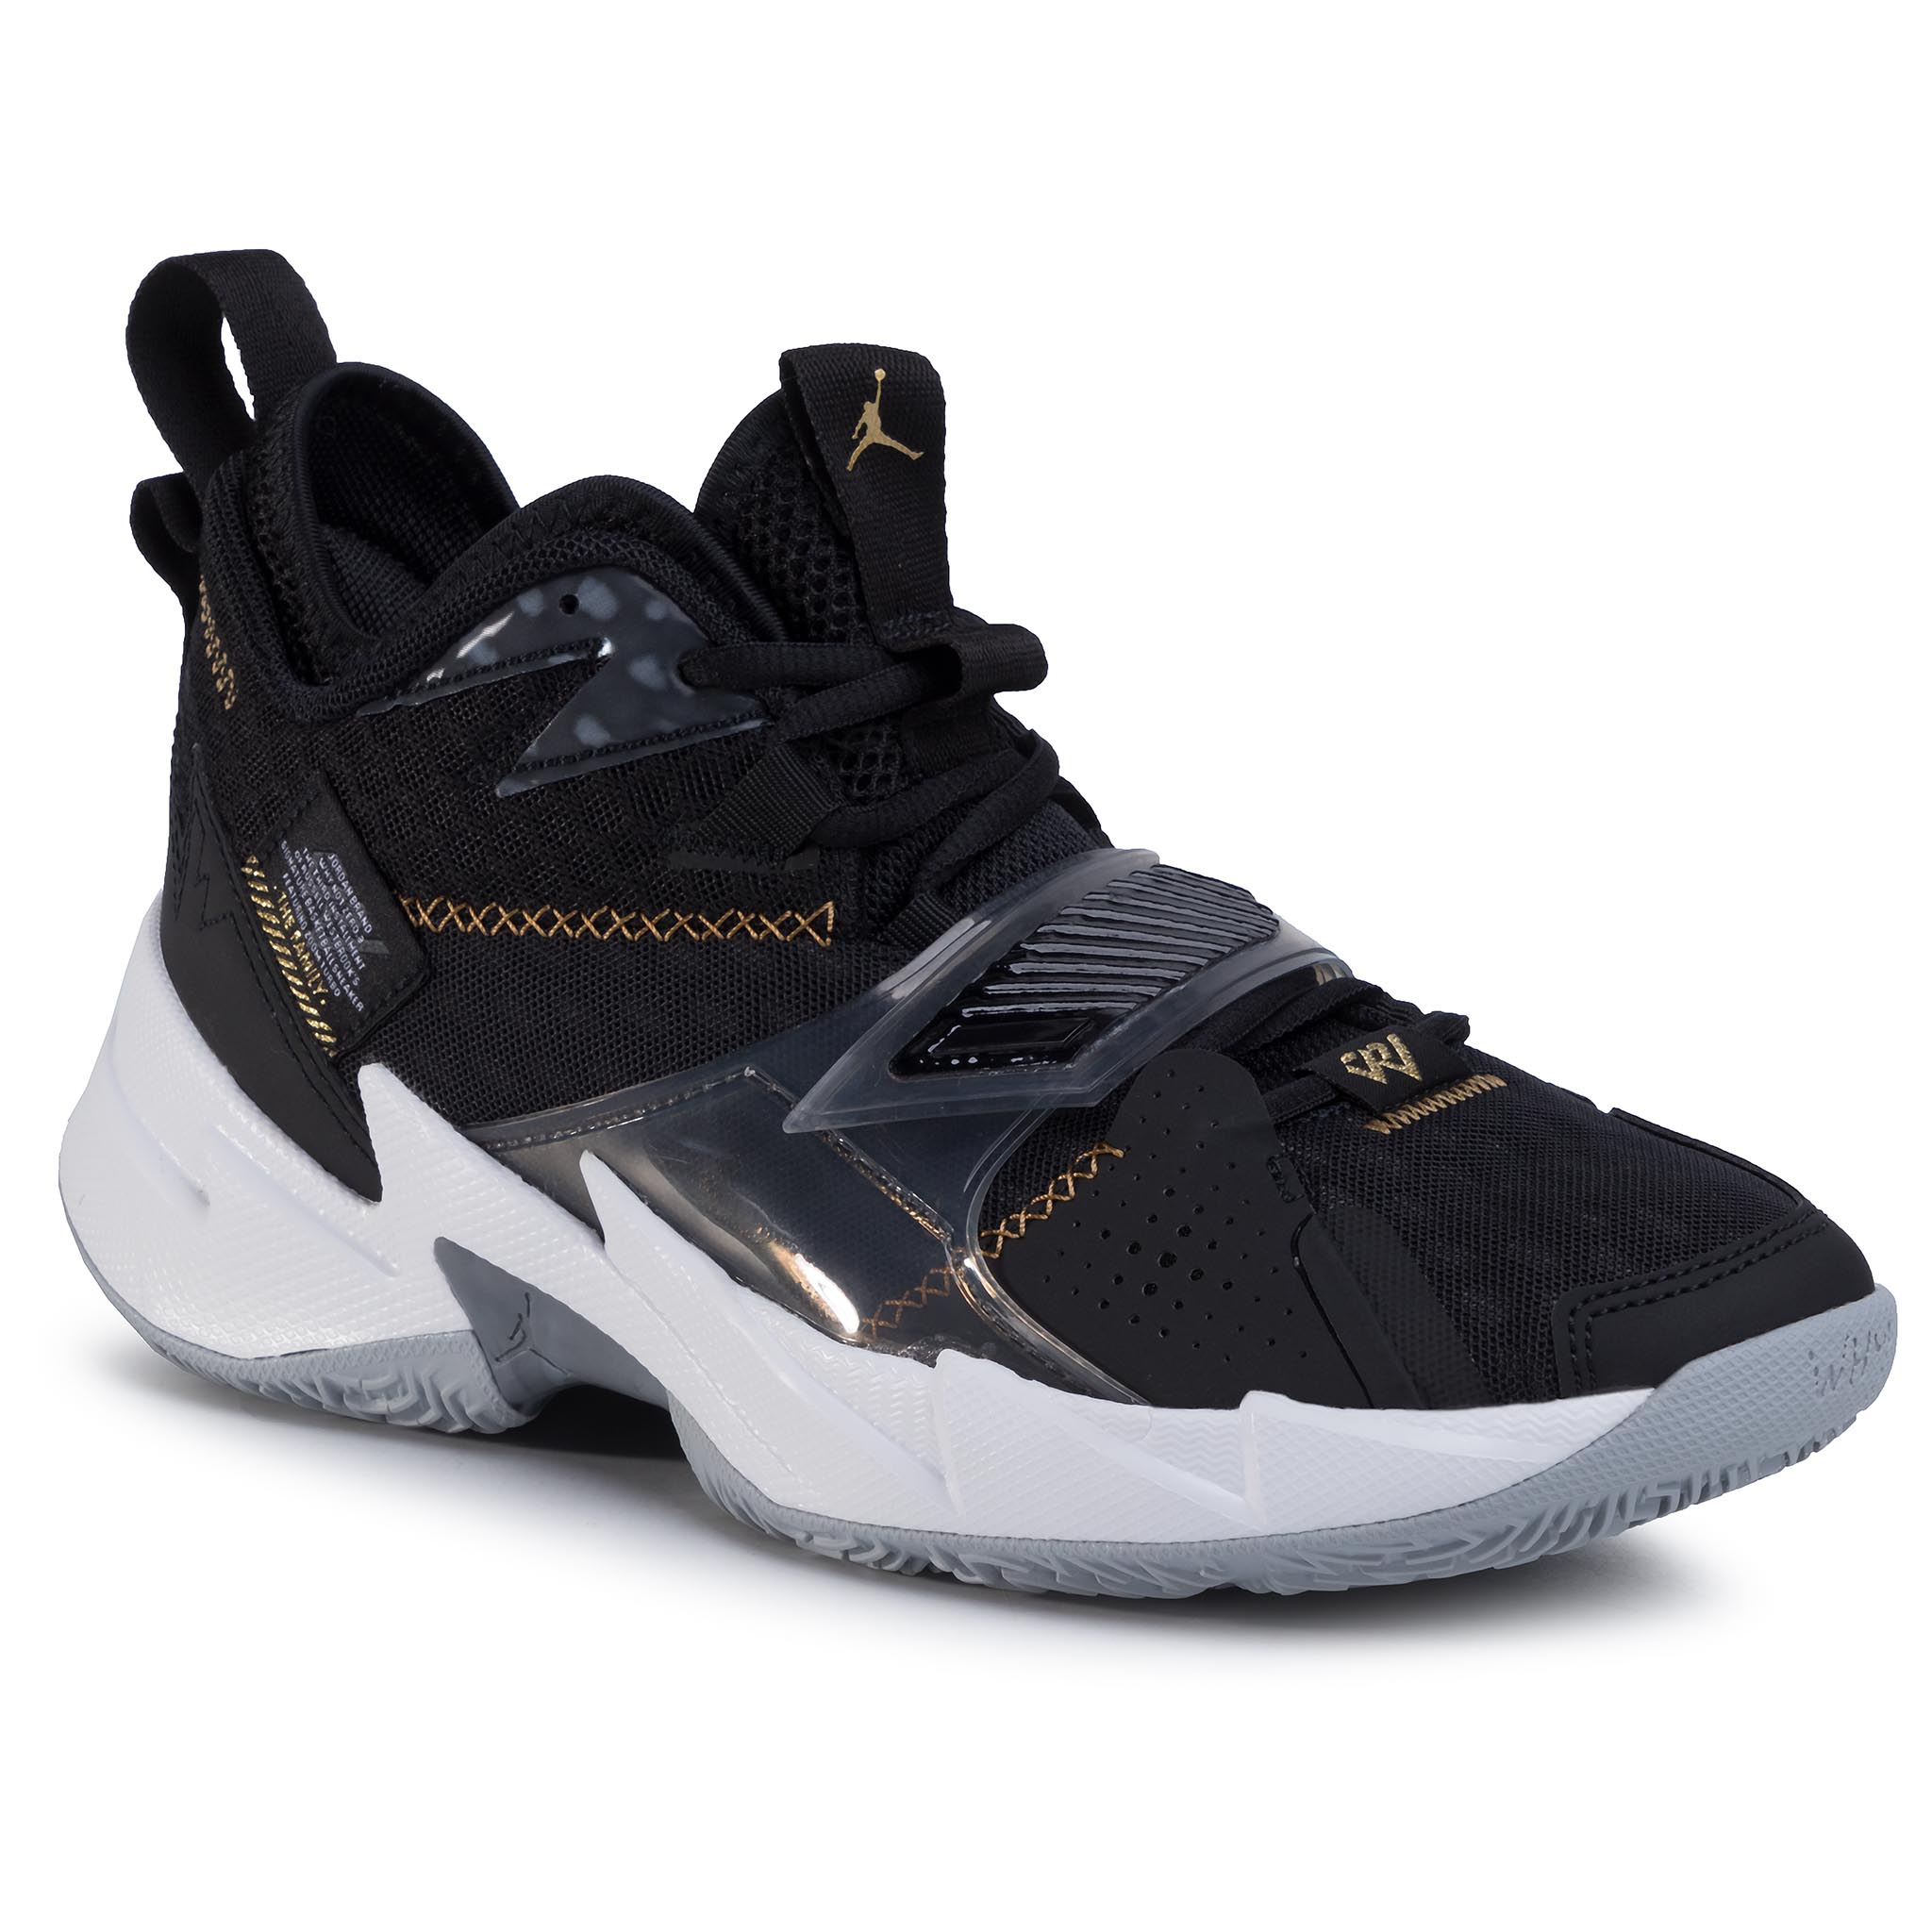 Pantofi Nike - Why Not Zero.3 Cd3003 001 Black/Metallic Gold/White imagine epantofi.ro 2021